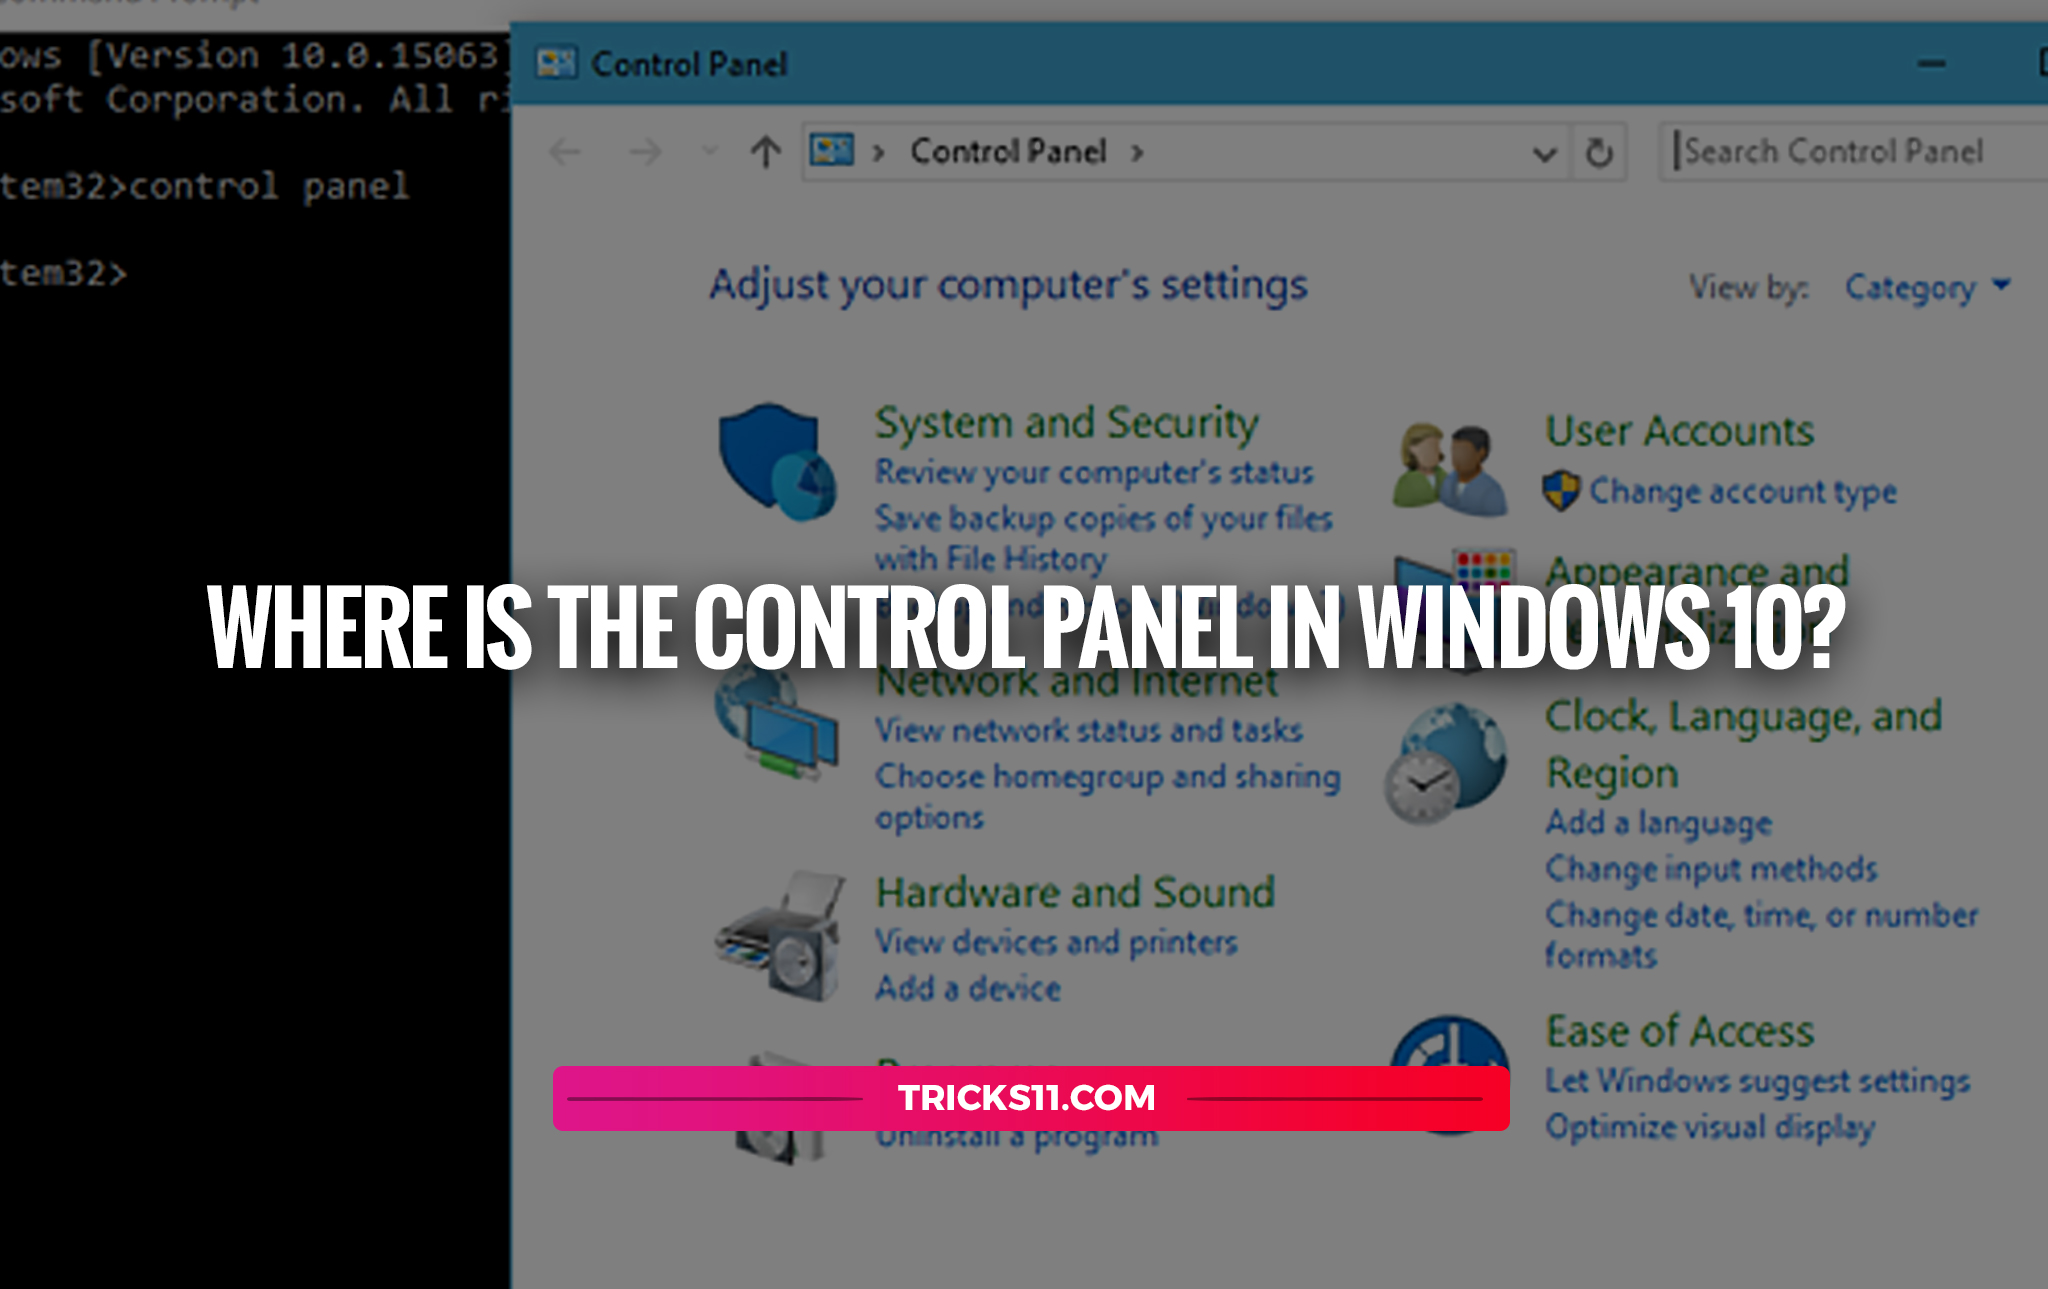 Where Is The Control Panel In Windows 10?